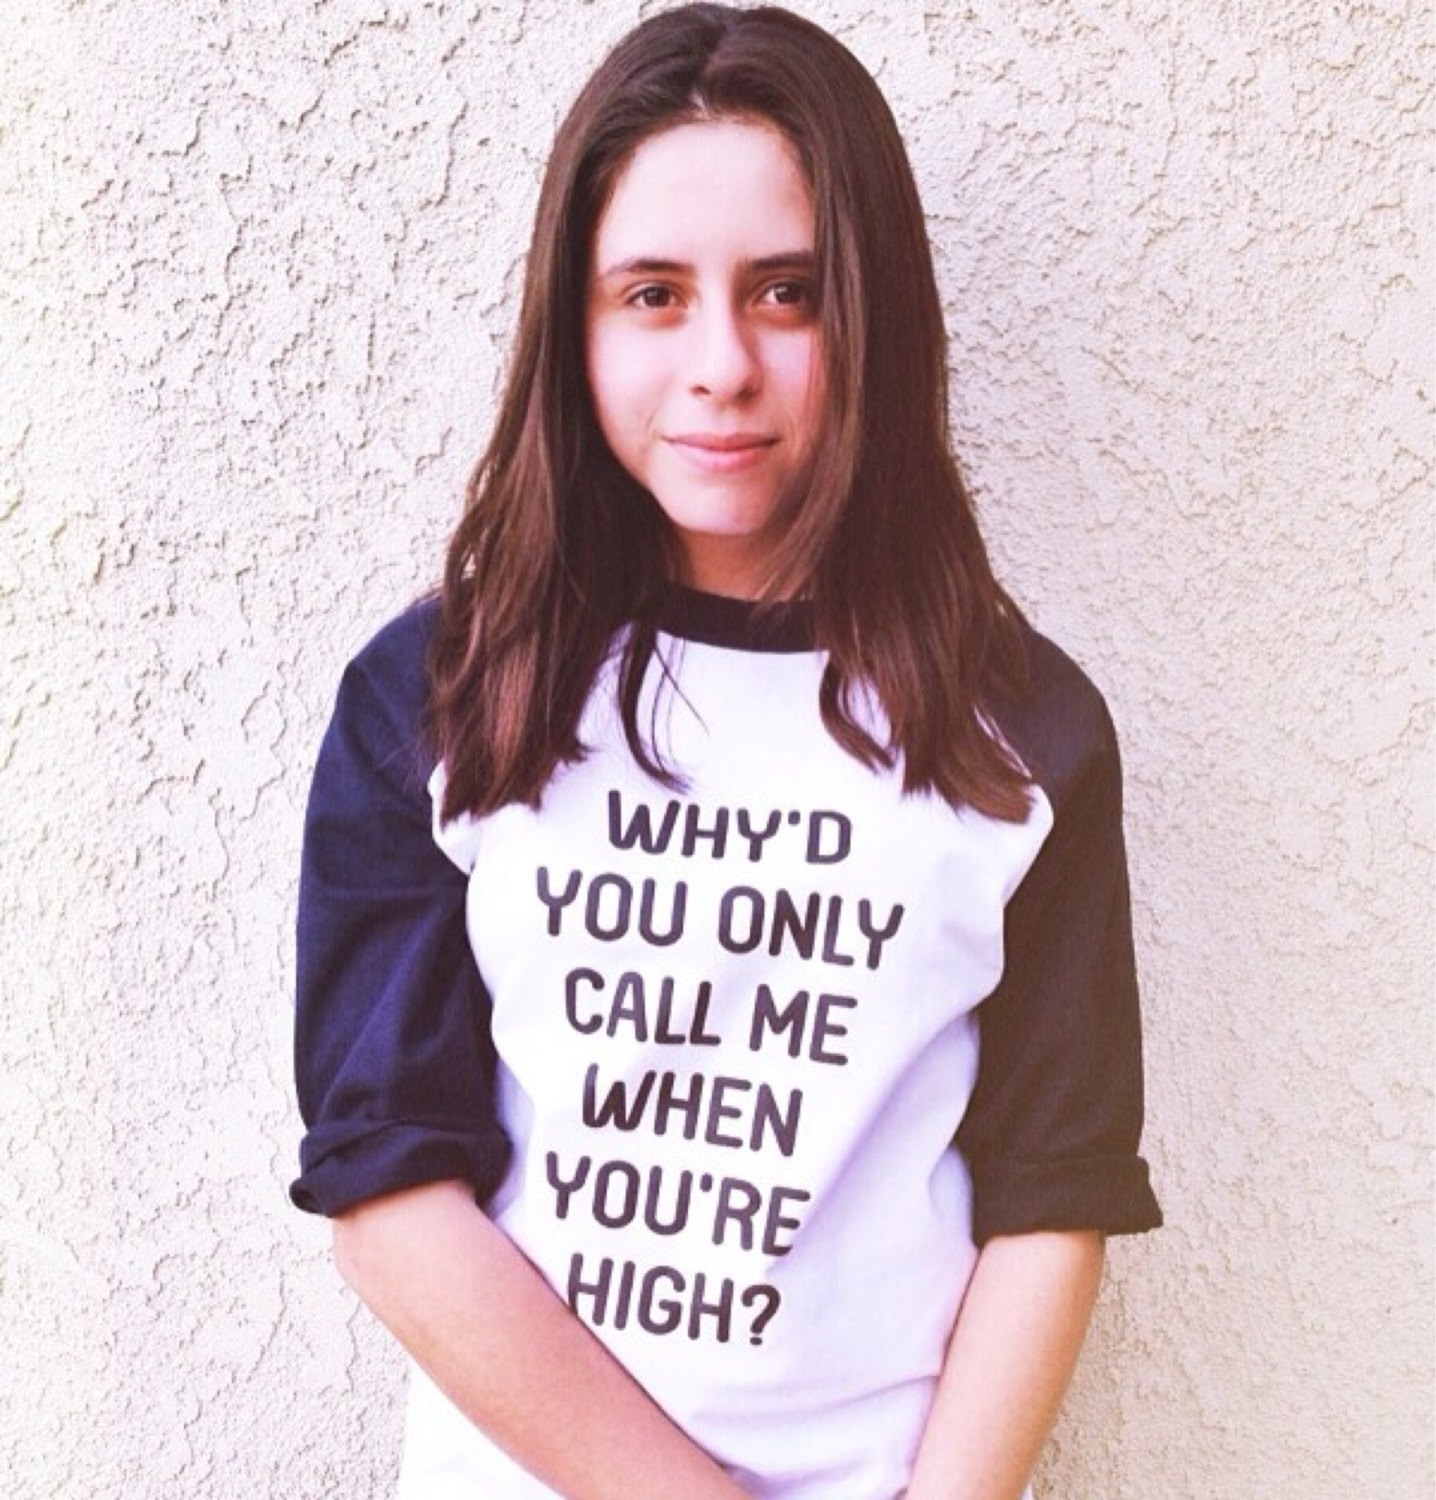 Why'd you only call me when you're high - Arctic Monkeys tshirt